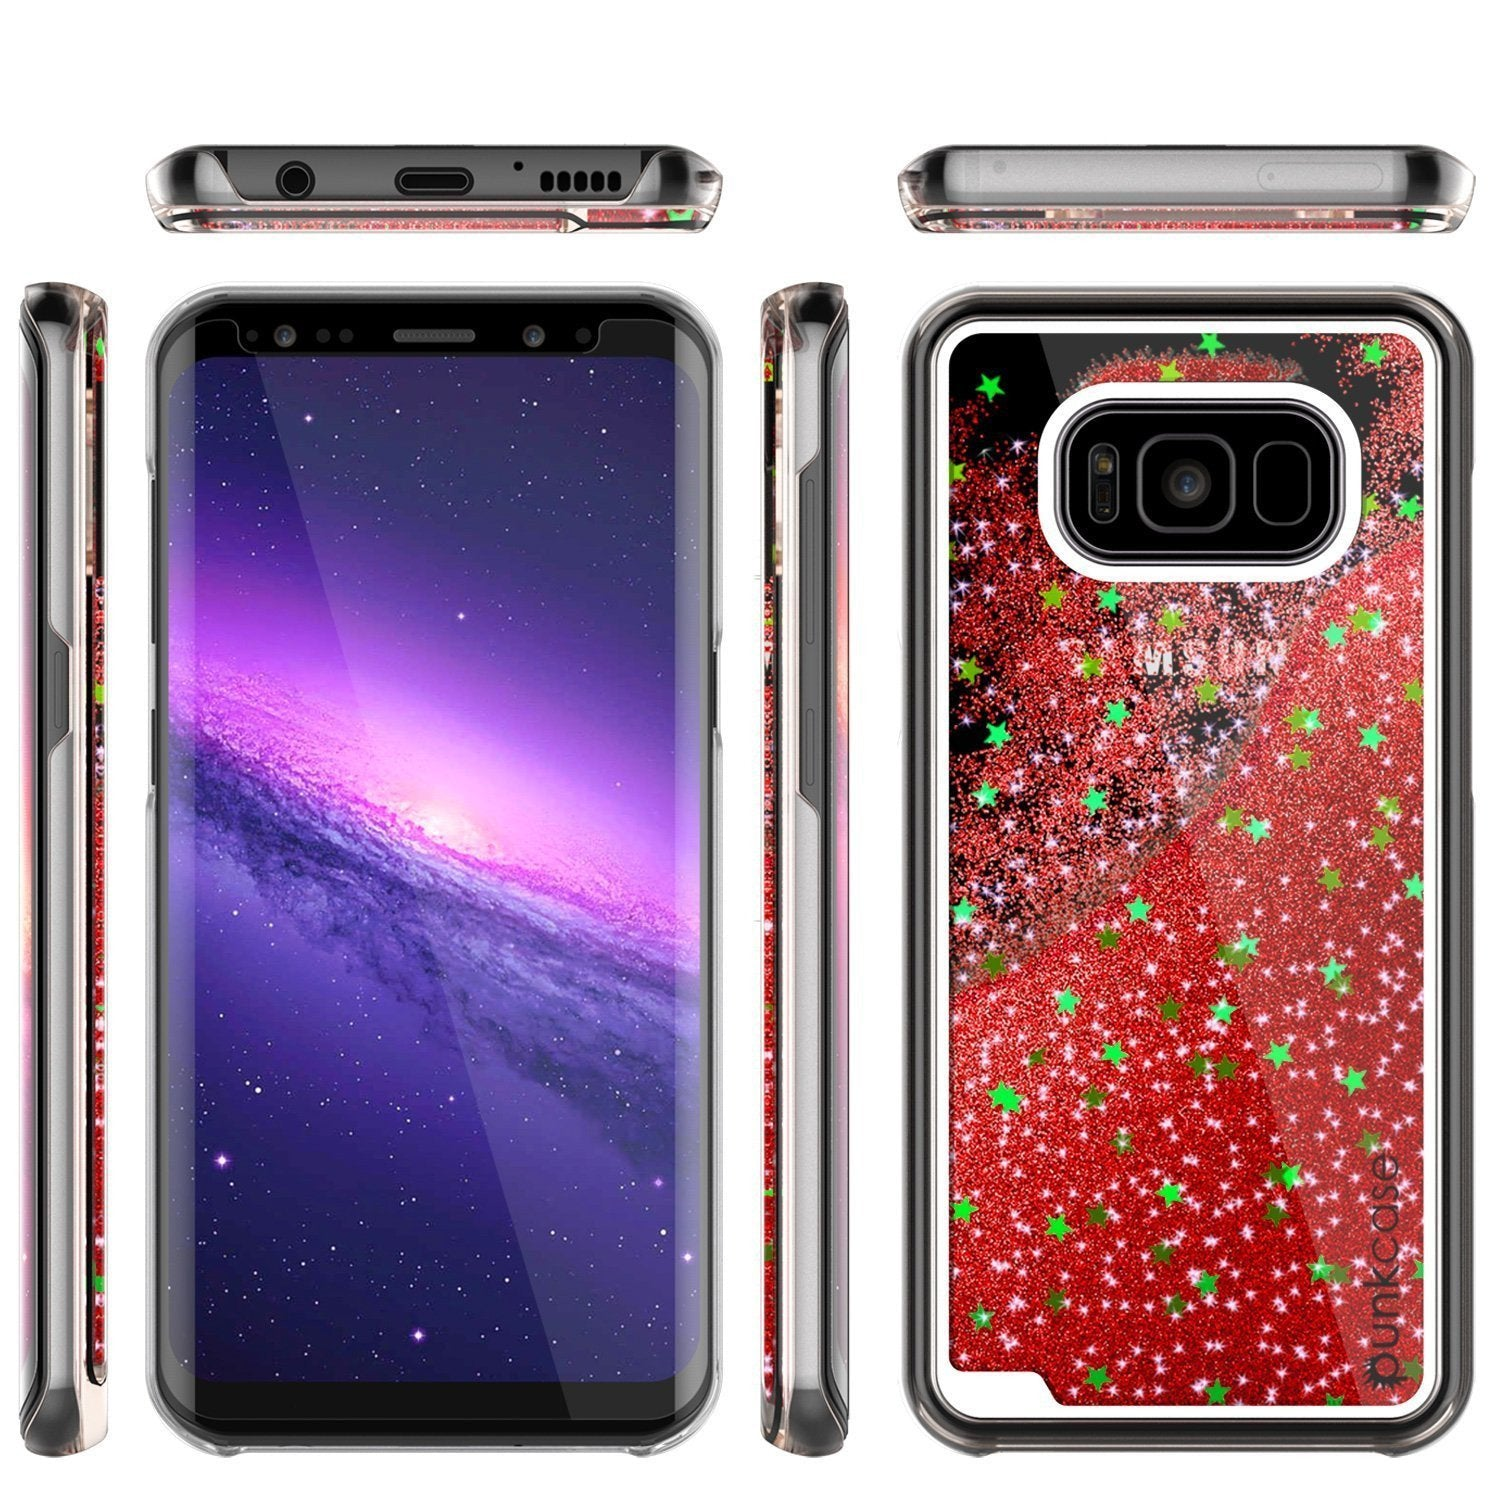 S8 Plus Case, Punkcase [Liquid Series] Protective Dual Layer Floating Glitter Cover with lots of Bling & Sparkle + PunkShield Screen Protector for Samsungs Galaxy S8+ [Red] - PunkCase NZ